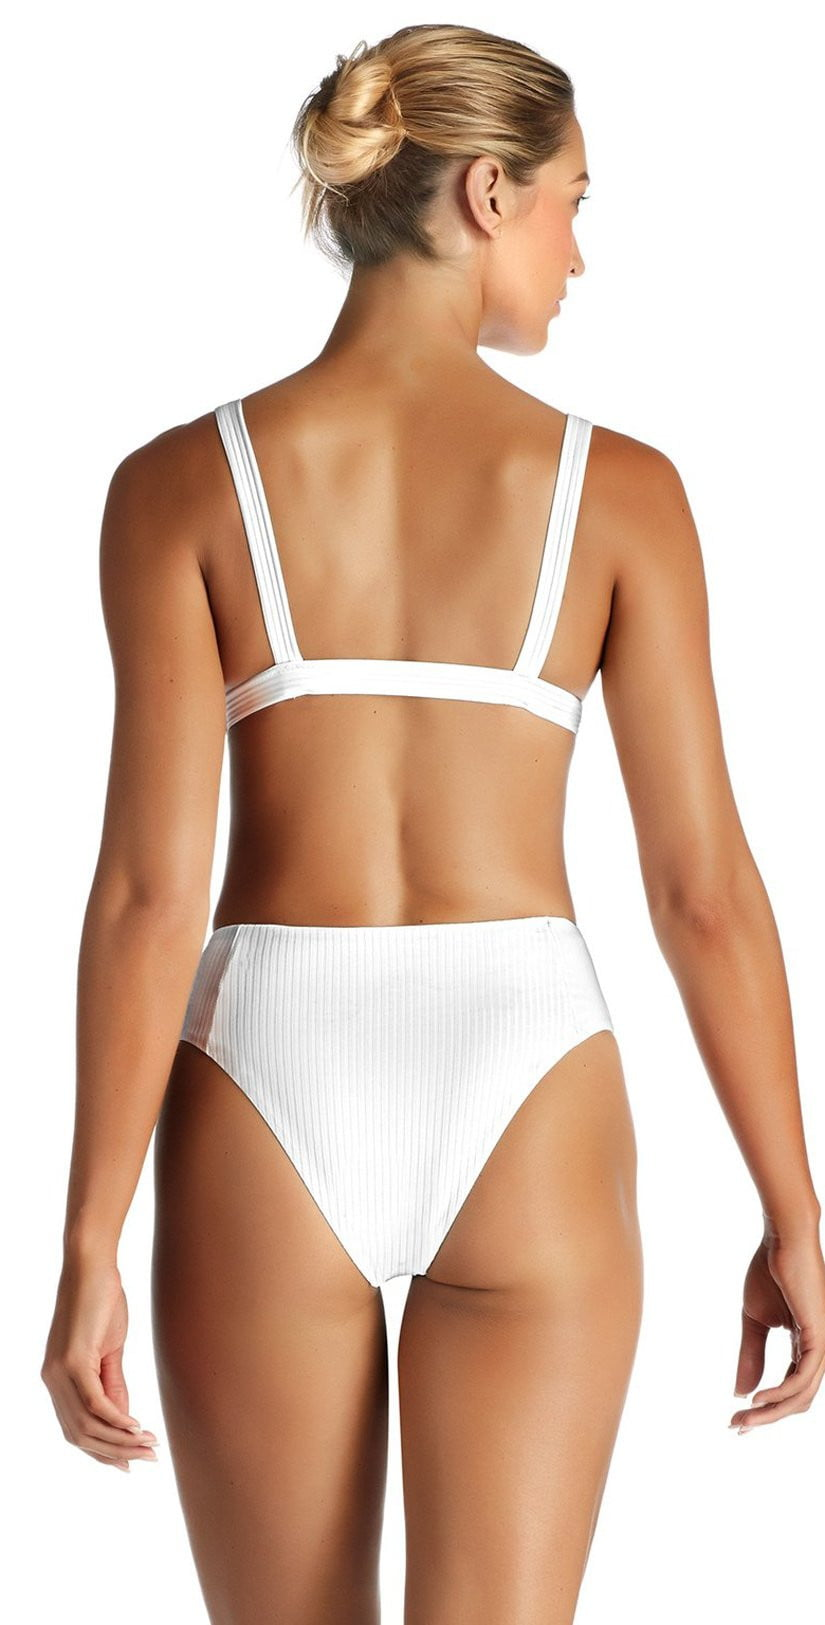 Vitamin A Neutra EcoRib Triangle Bikini Top in White 805T ERW back studio model